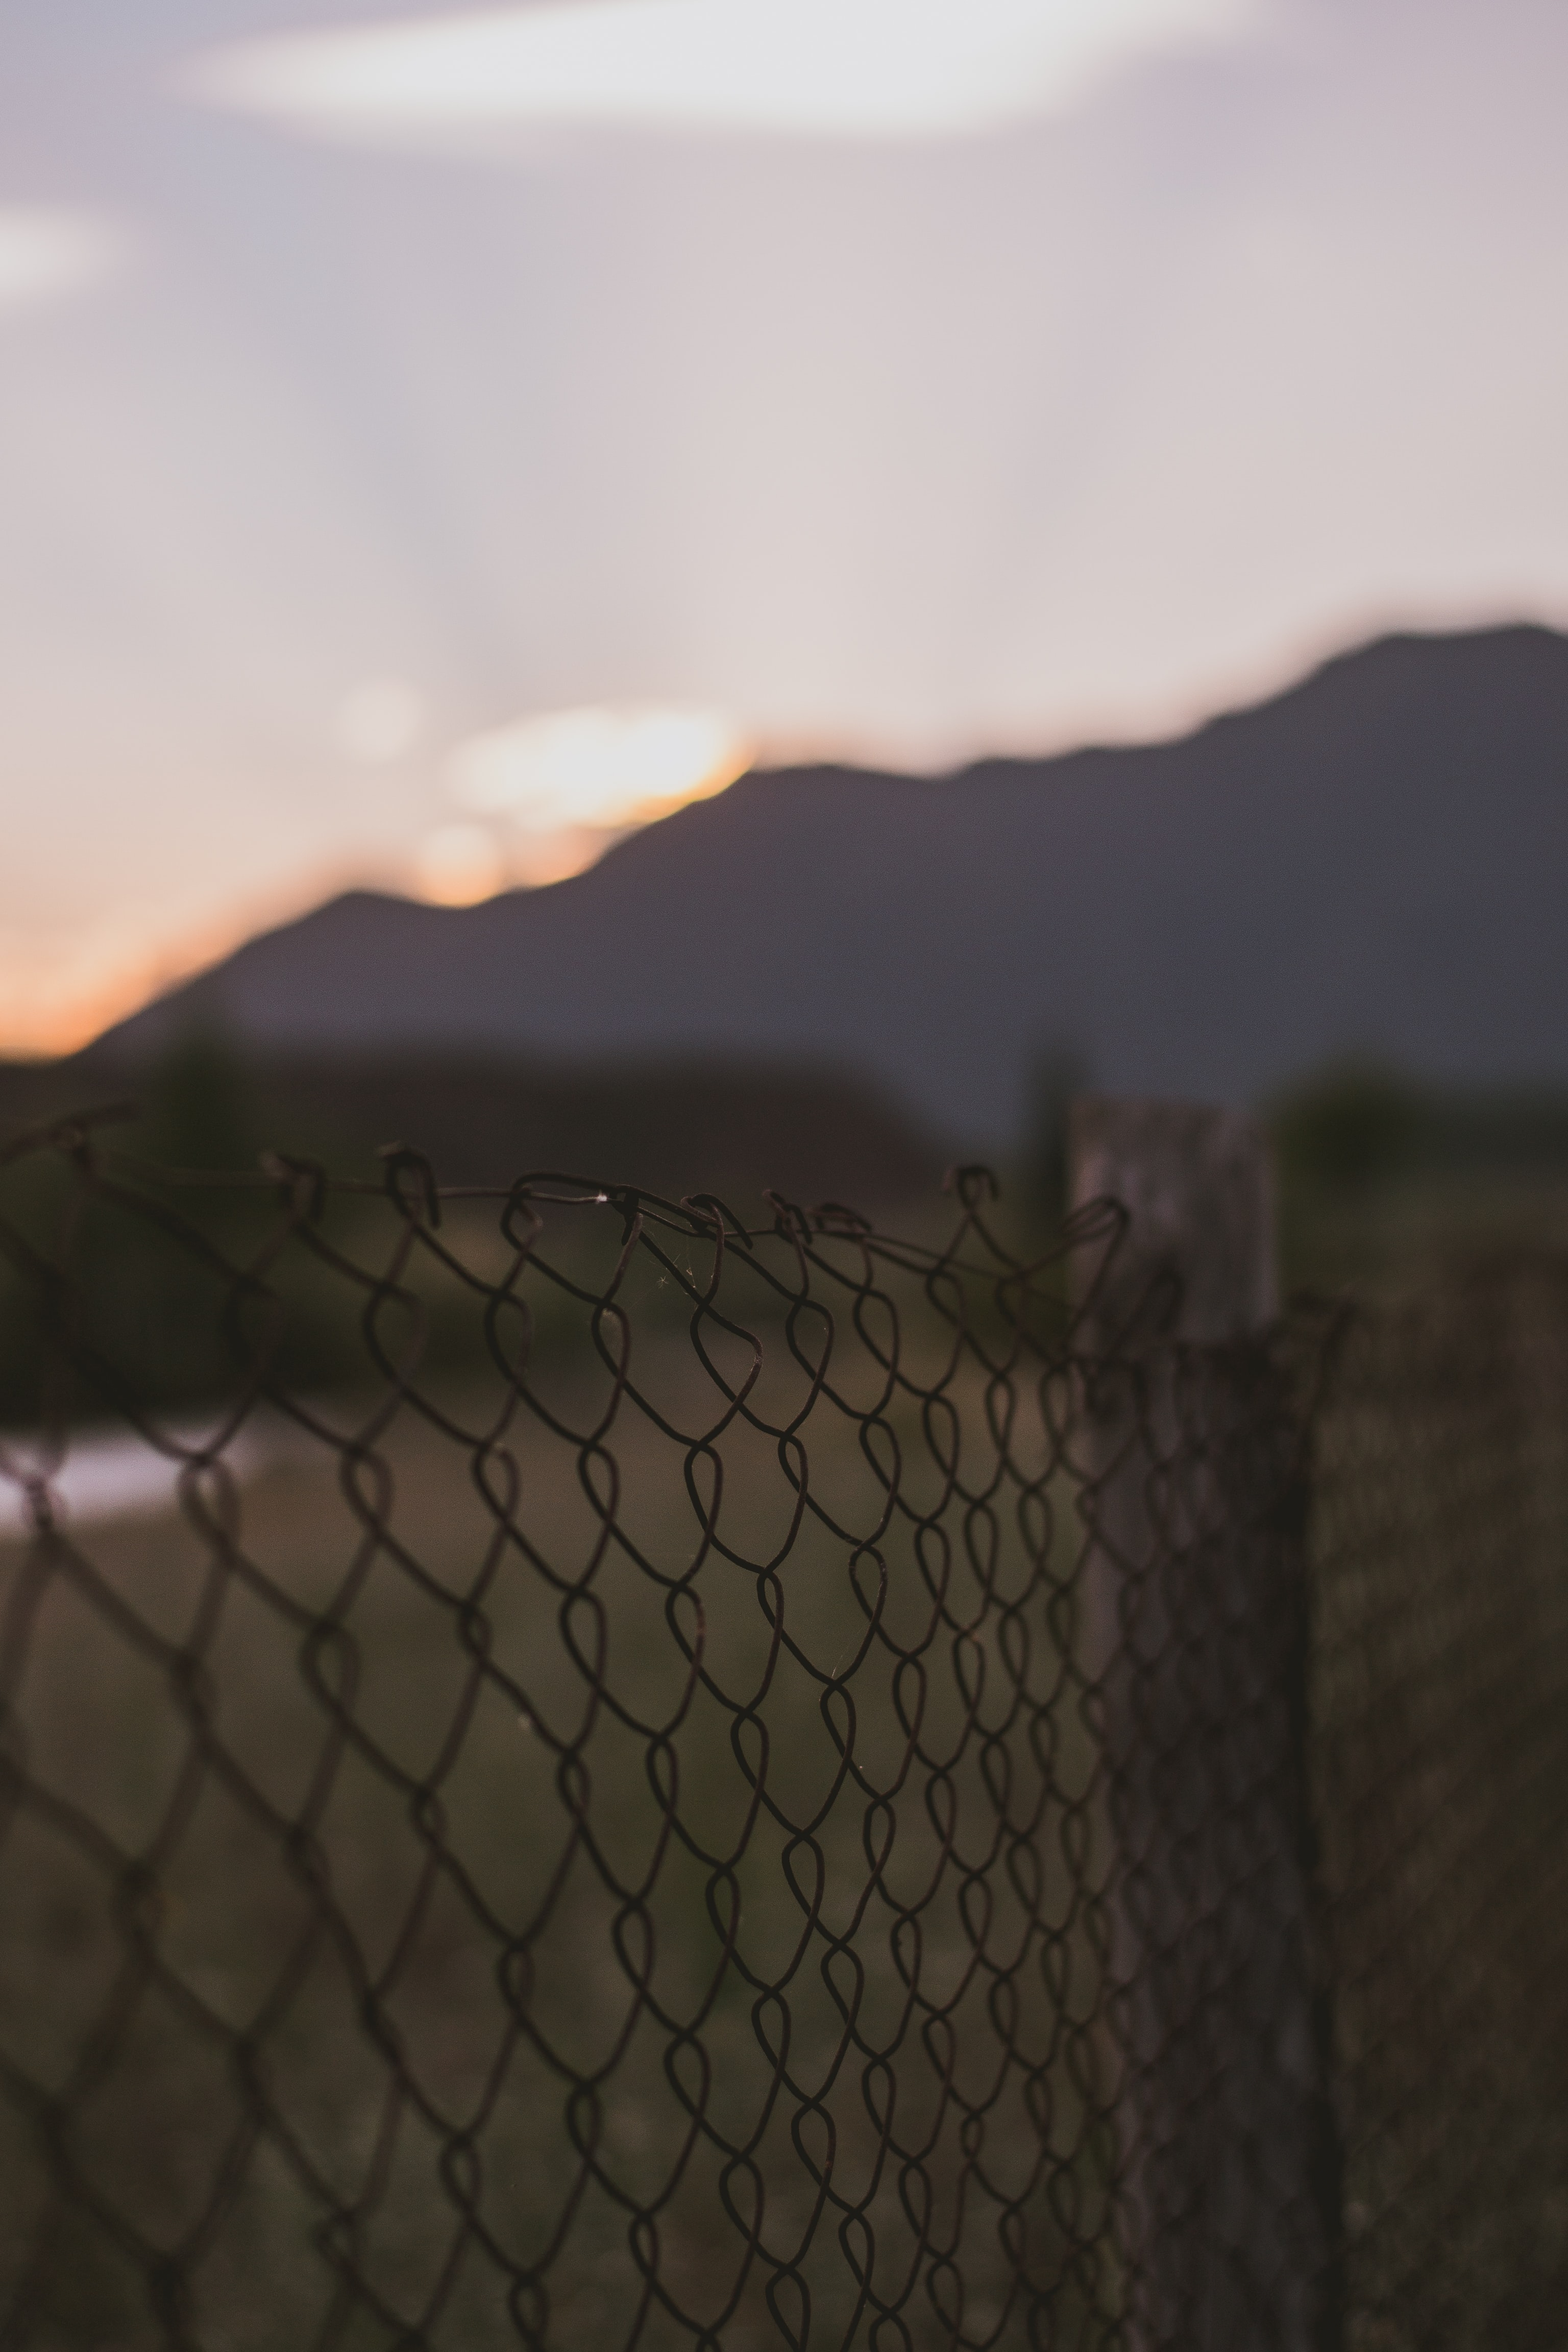 selective focus photo of black chain link fence